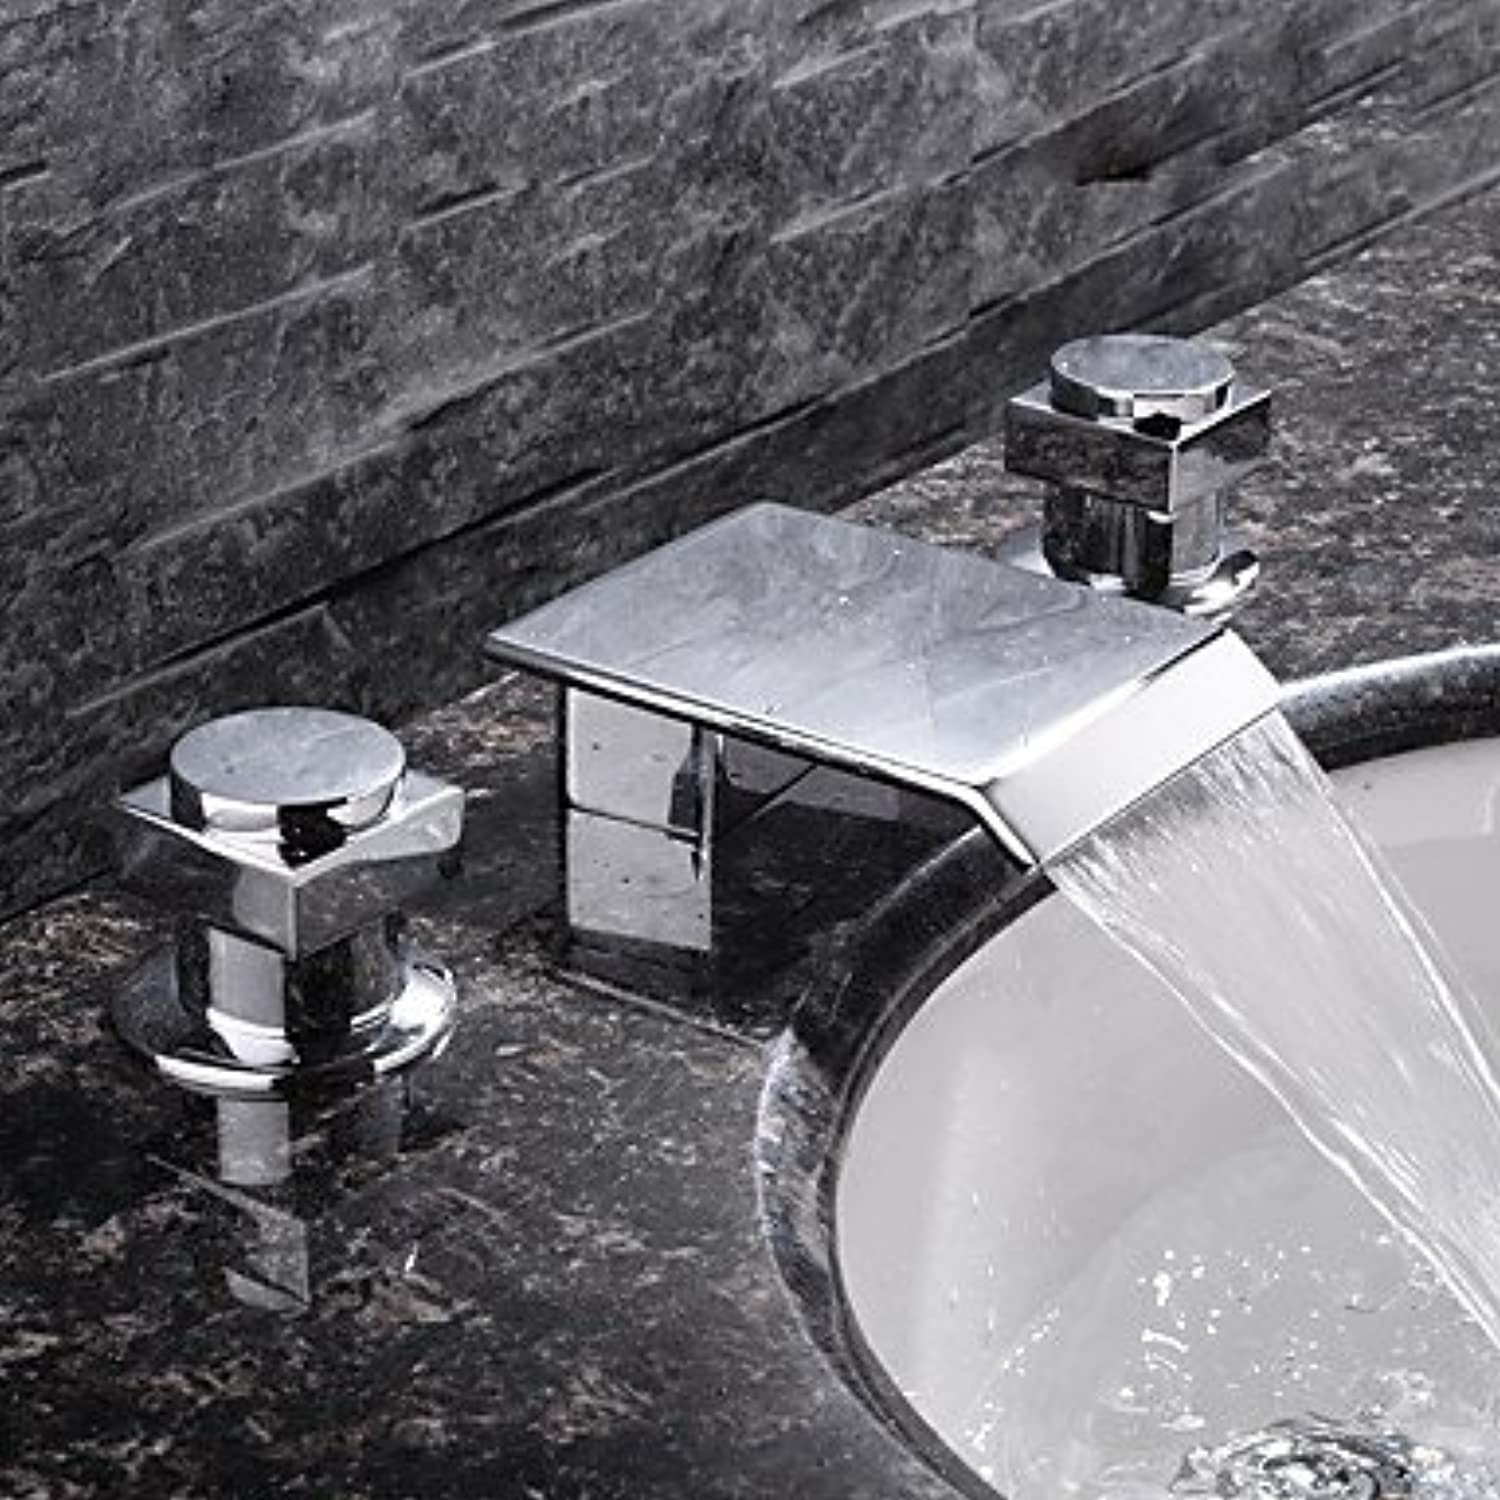 SUNNY KEY-Bathroom Sink Taps@Contemporary Widespread Waterfall with Ceramic Valve Two Two Two Handles Three Holes for Chrome , Bathroom Sink Faucet 0749c8